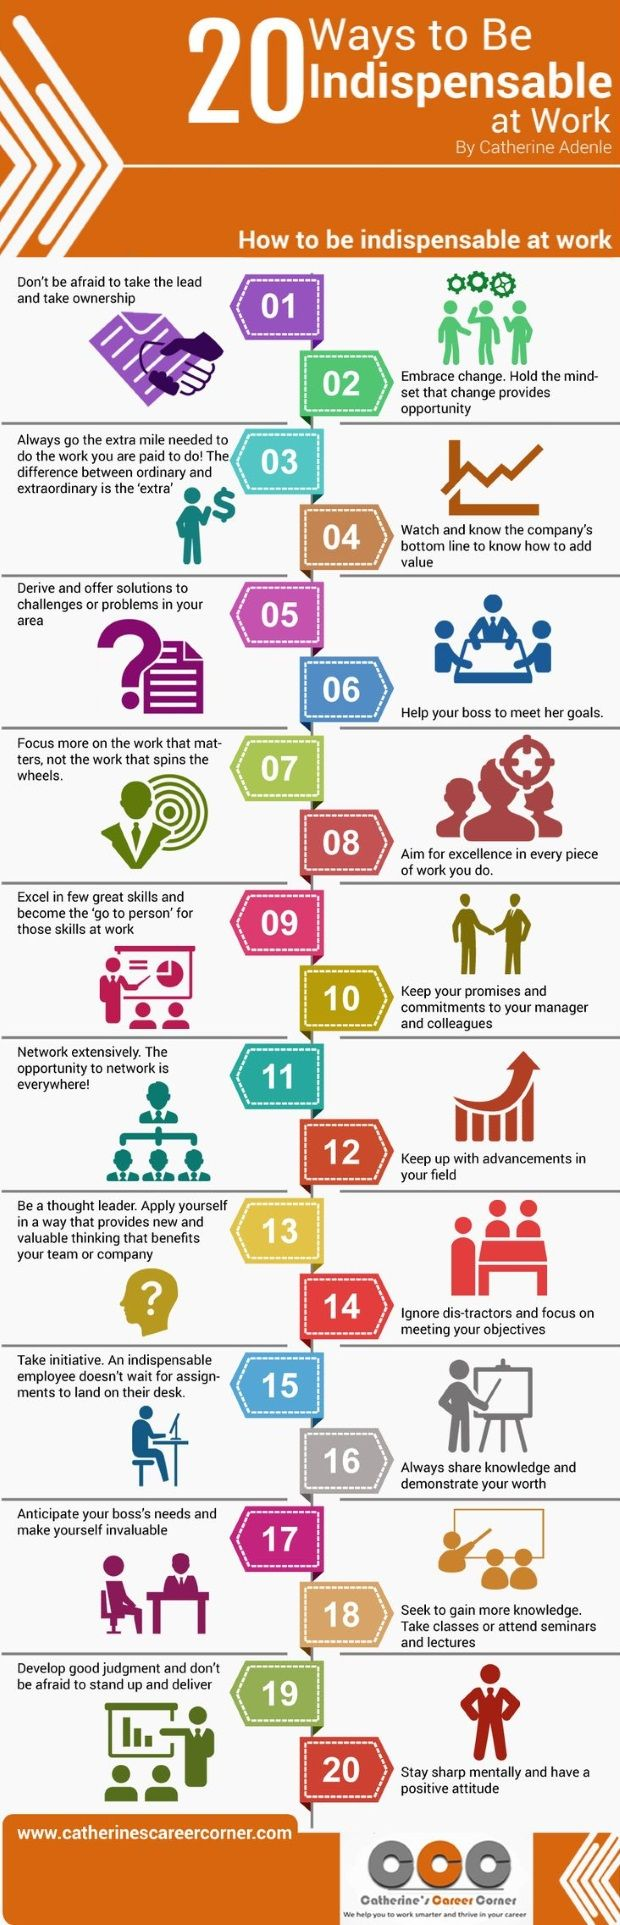 20 Ways to be Indispensable at Work - great ways to think about how to make your current role a challenge.